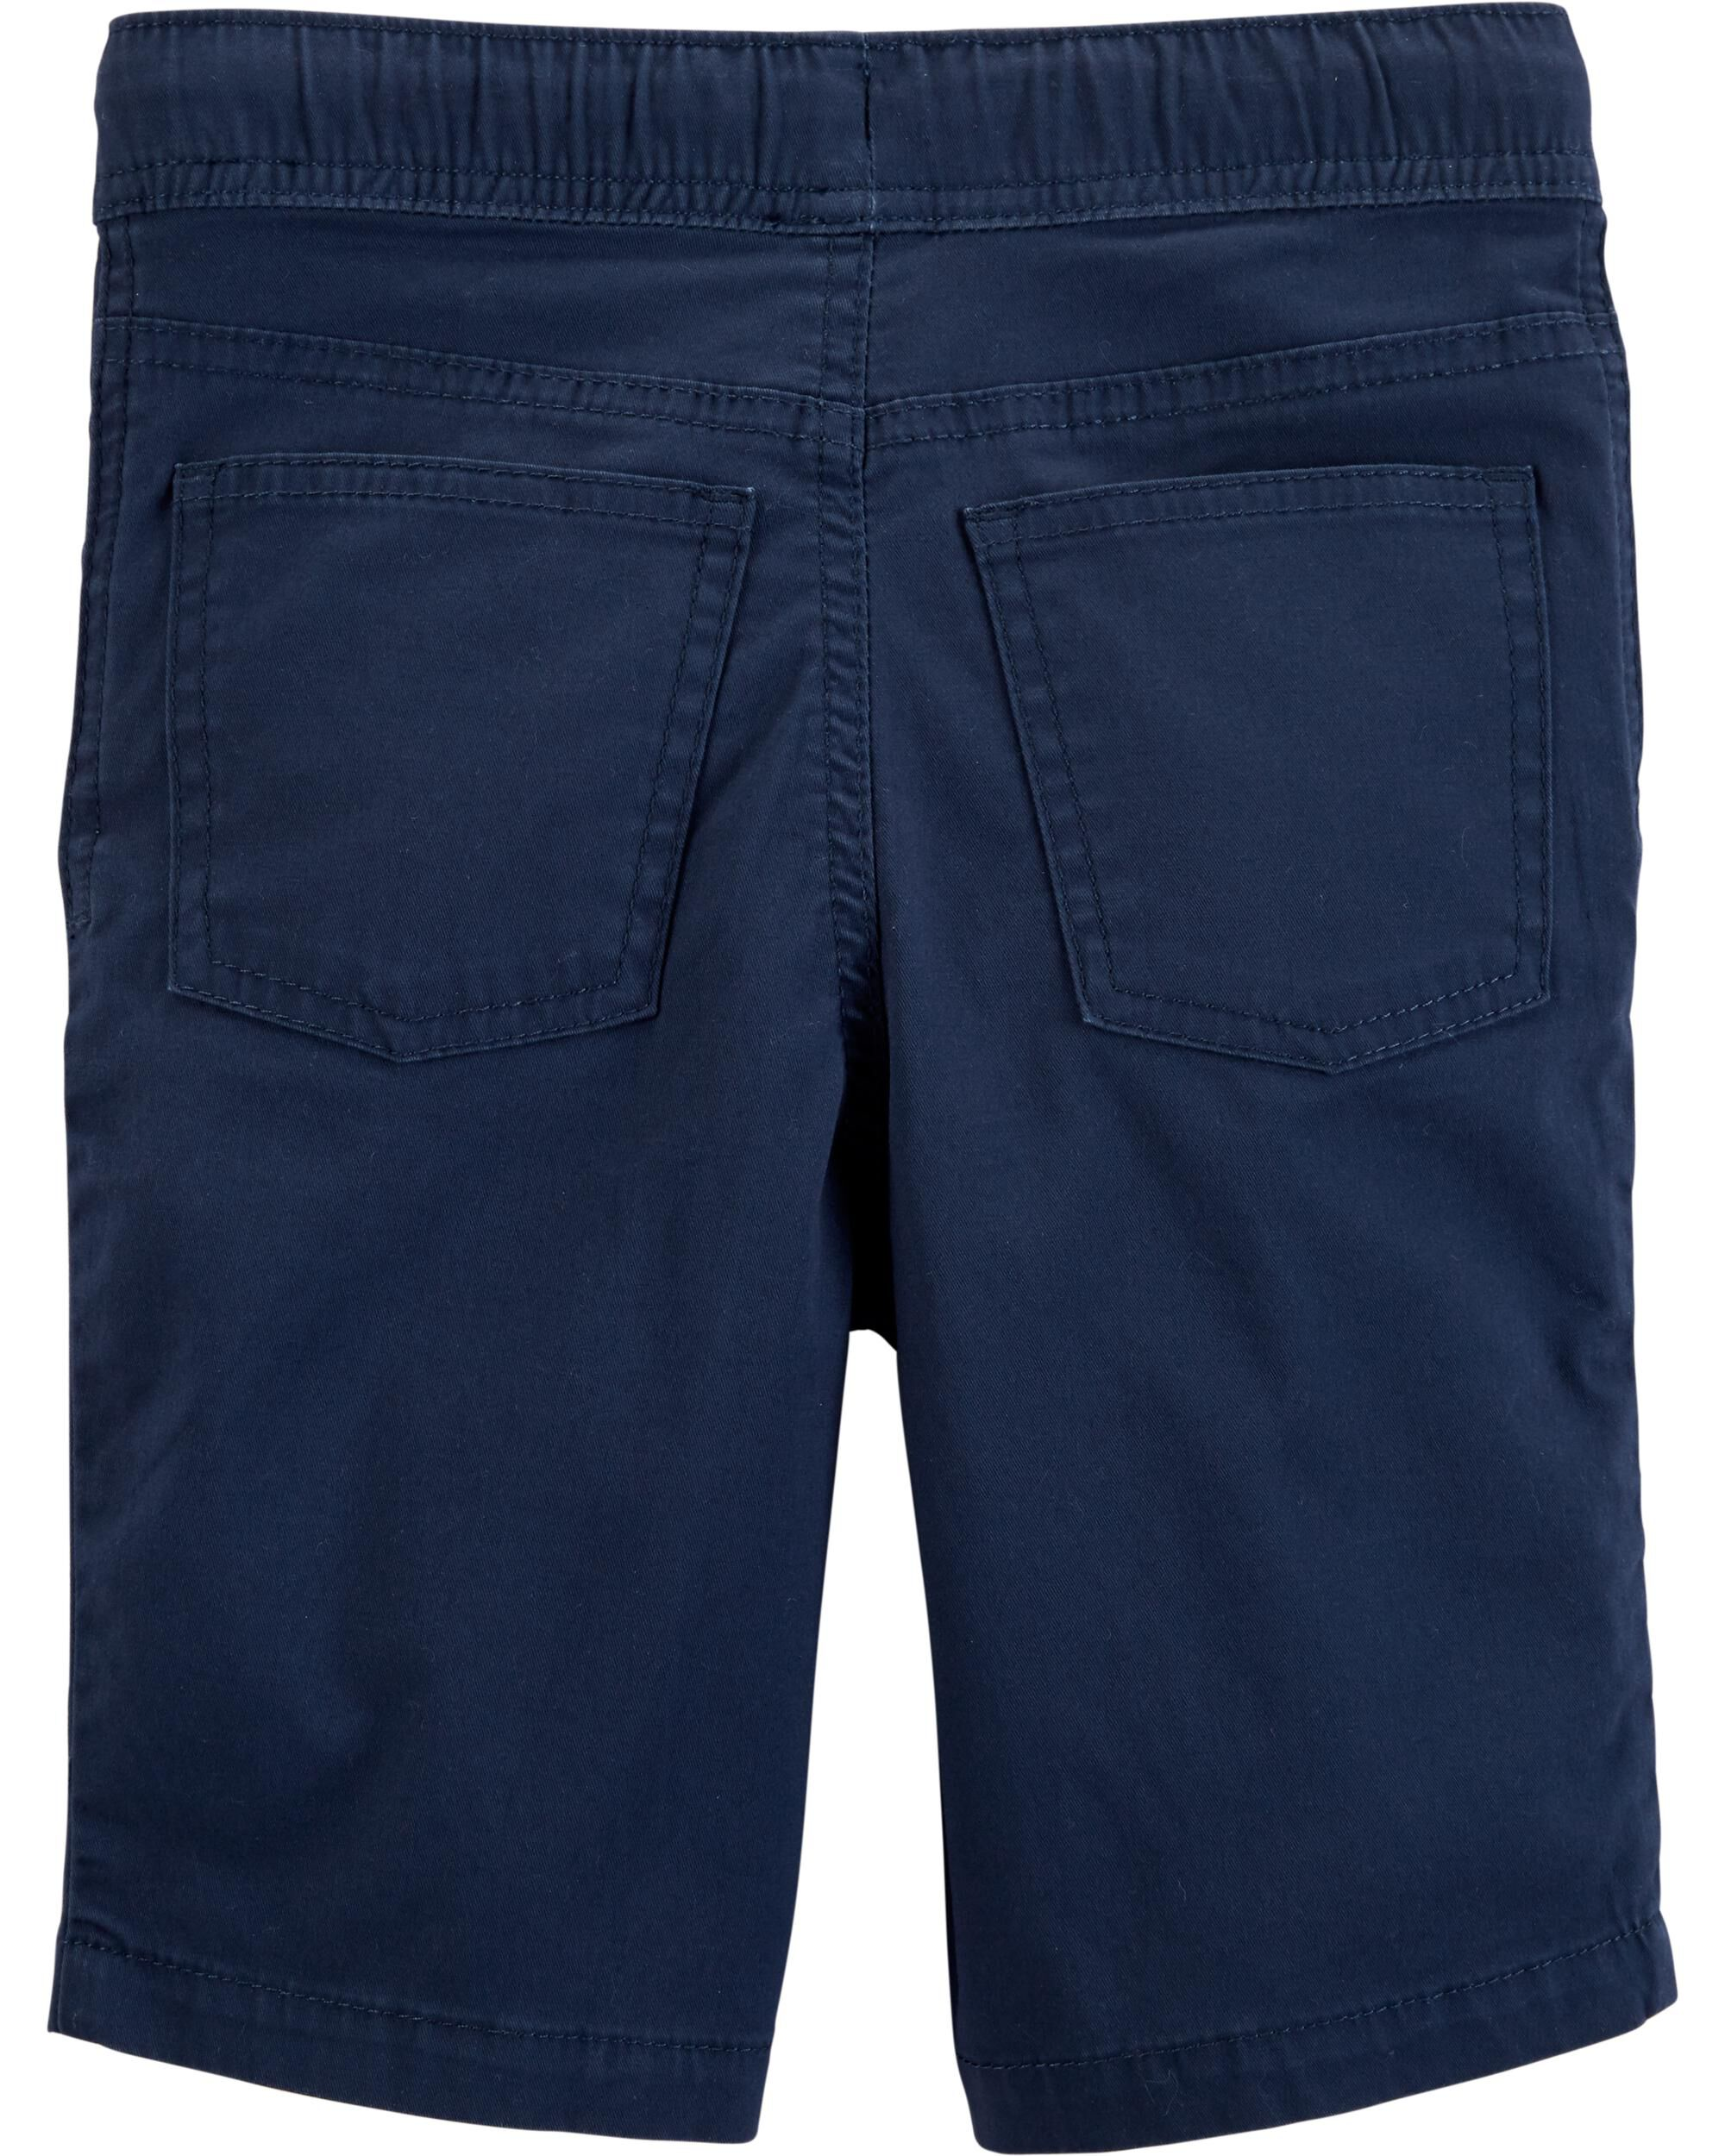 Carters Pull-On Super Stretch Denim Shorts